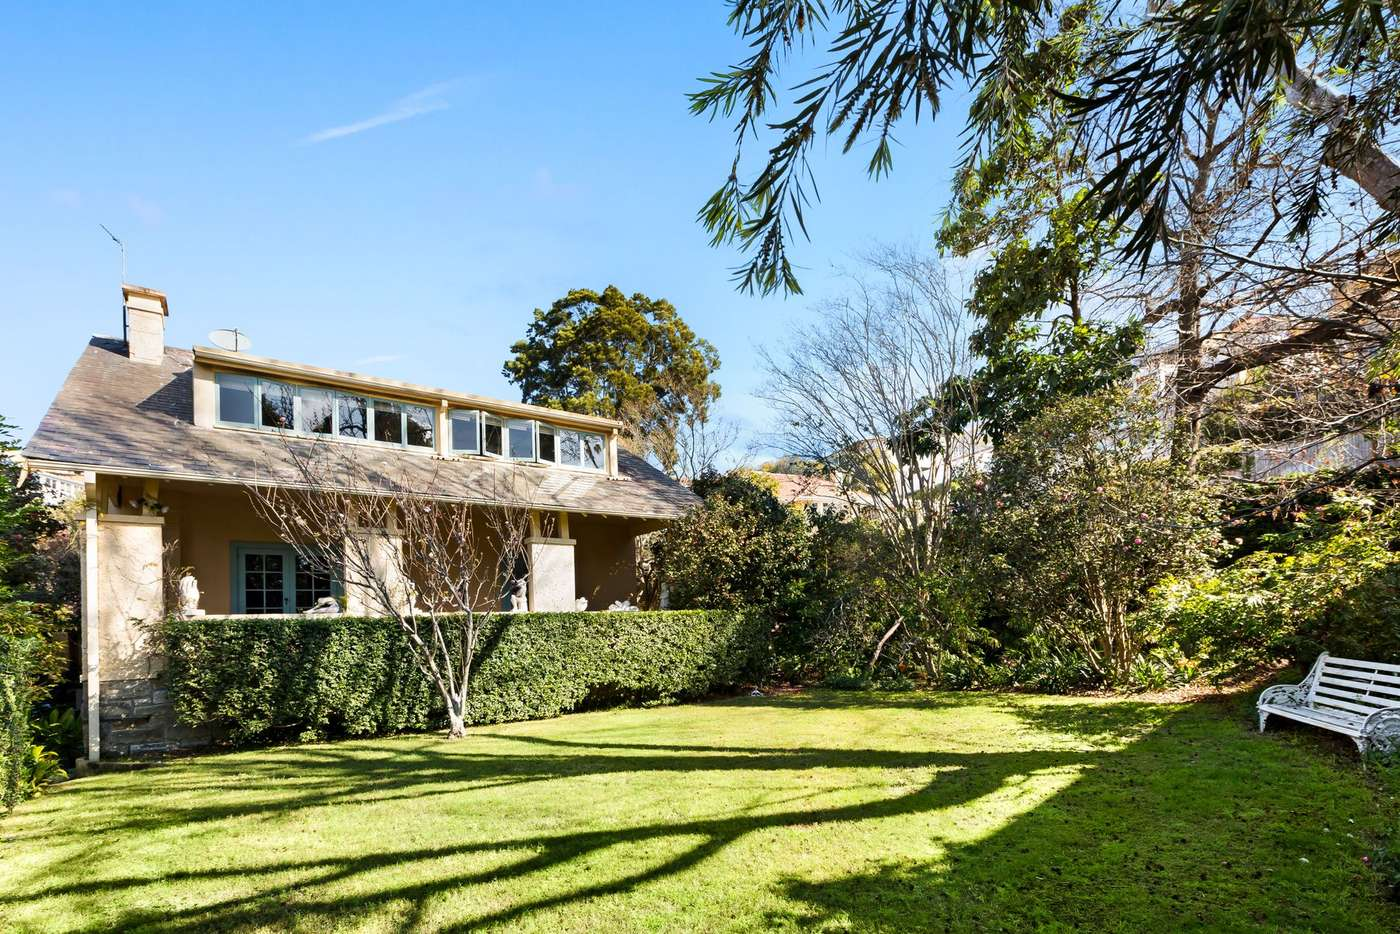 Main view of Homely house listing, 2 Beresford Crescent, Bellevue Hill NSW 2023